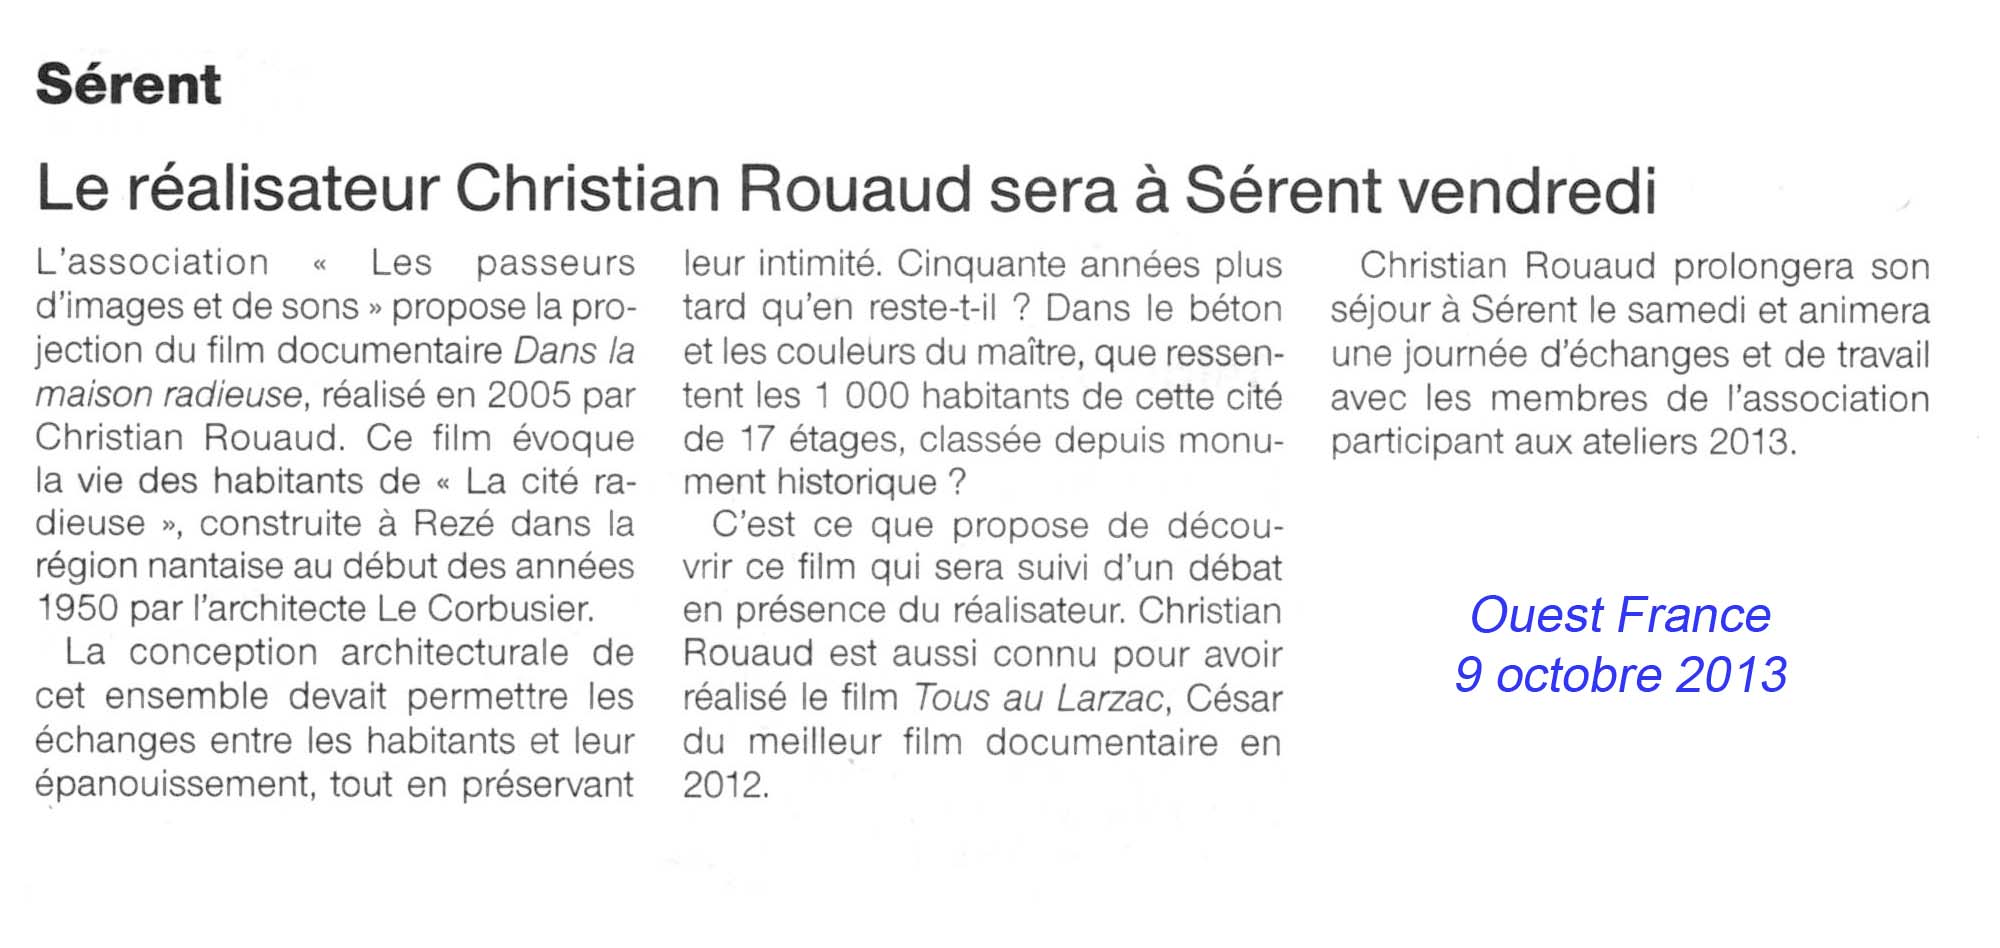 Christian Rouaud à Sérent